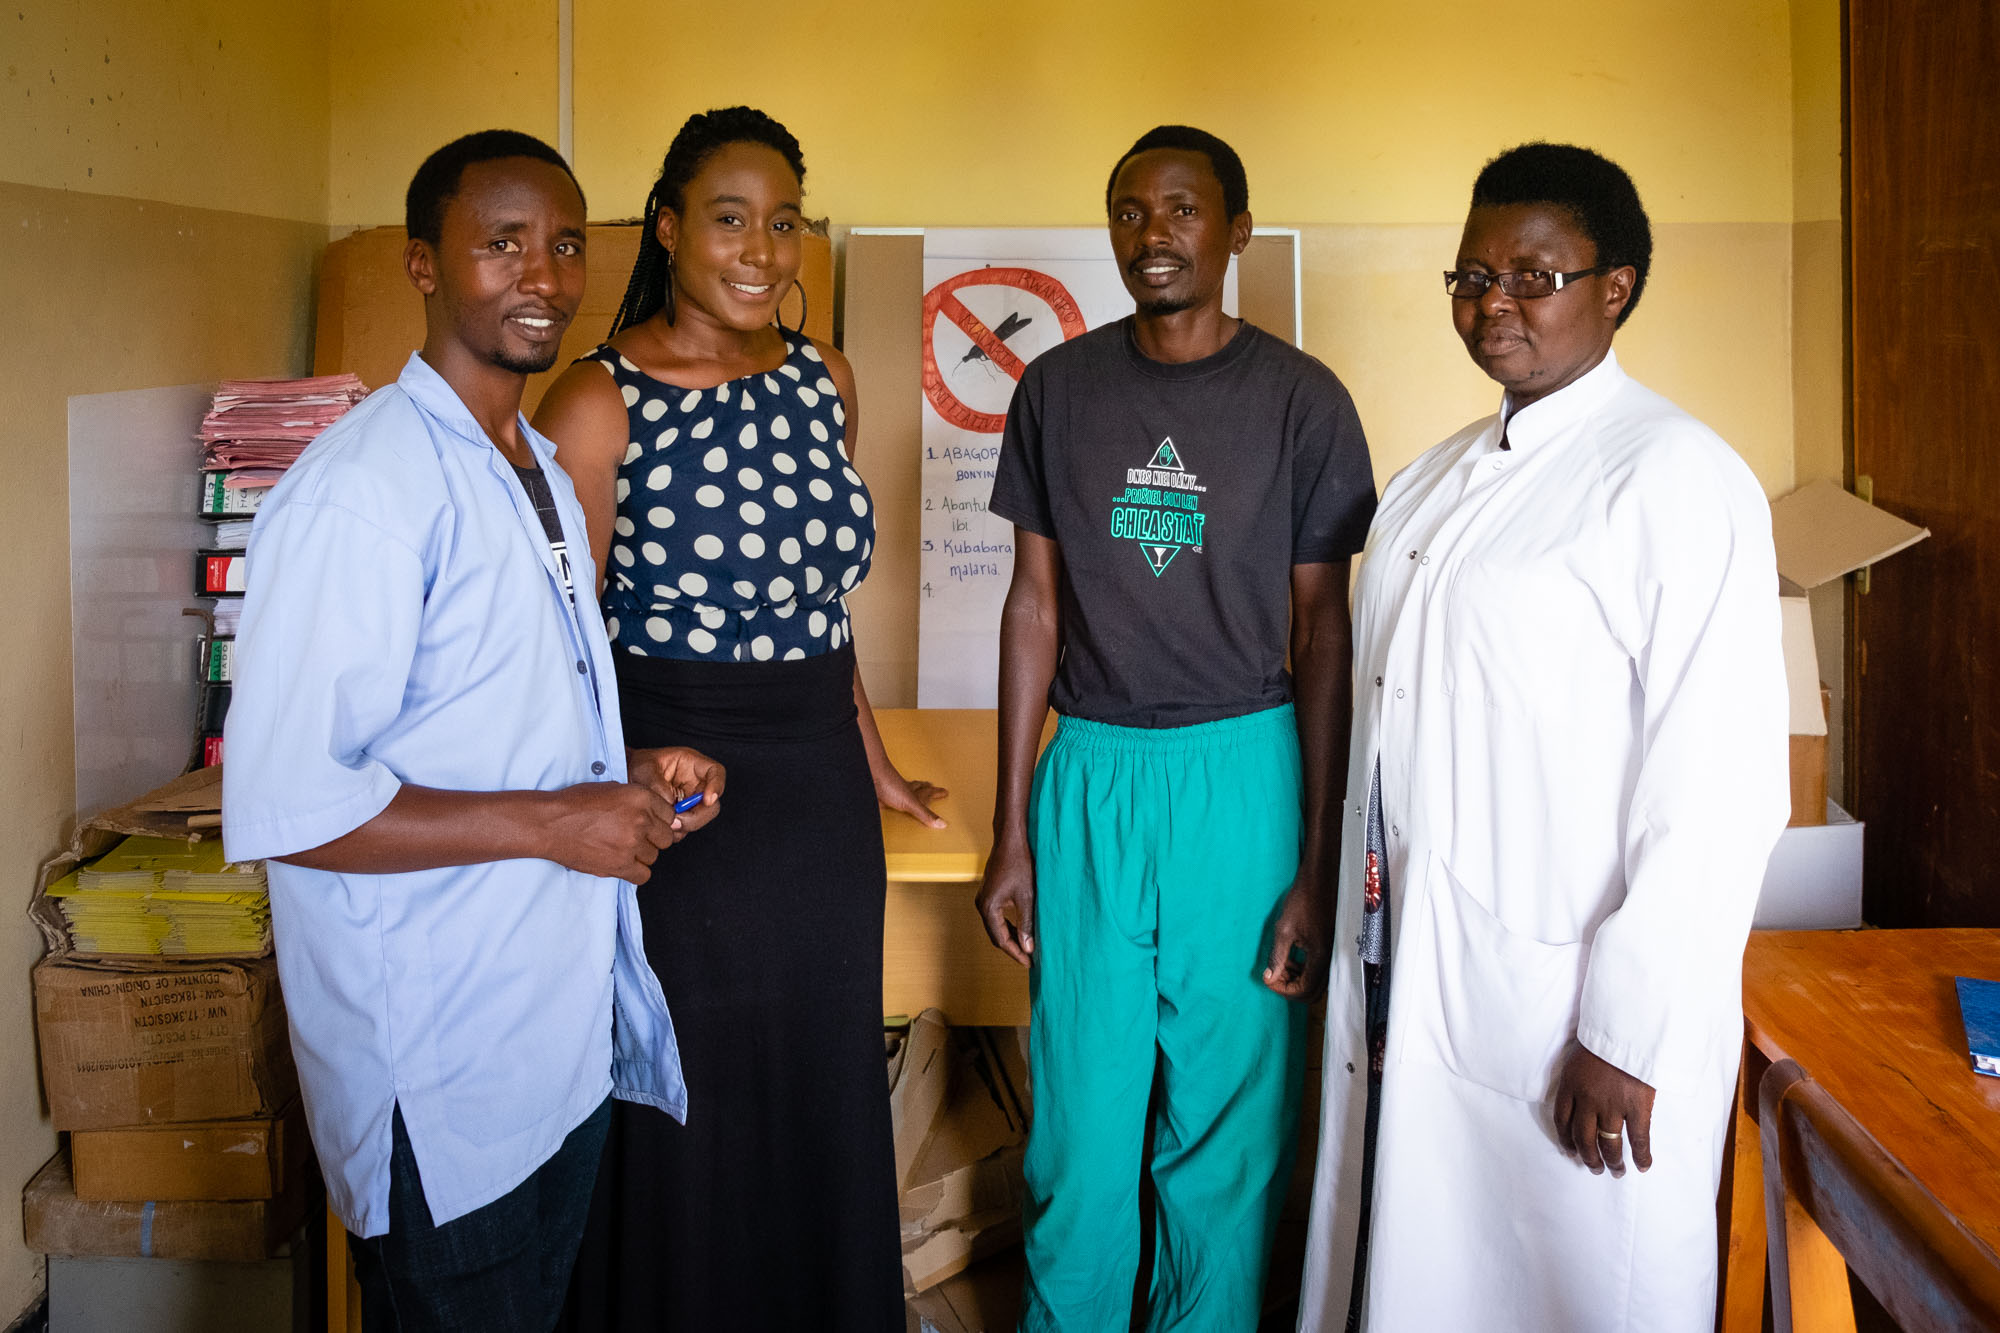 Niesha and her health center counterparts